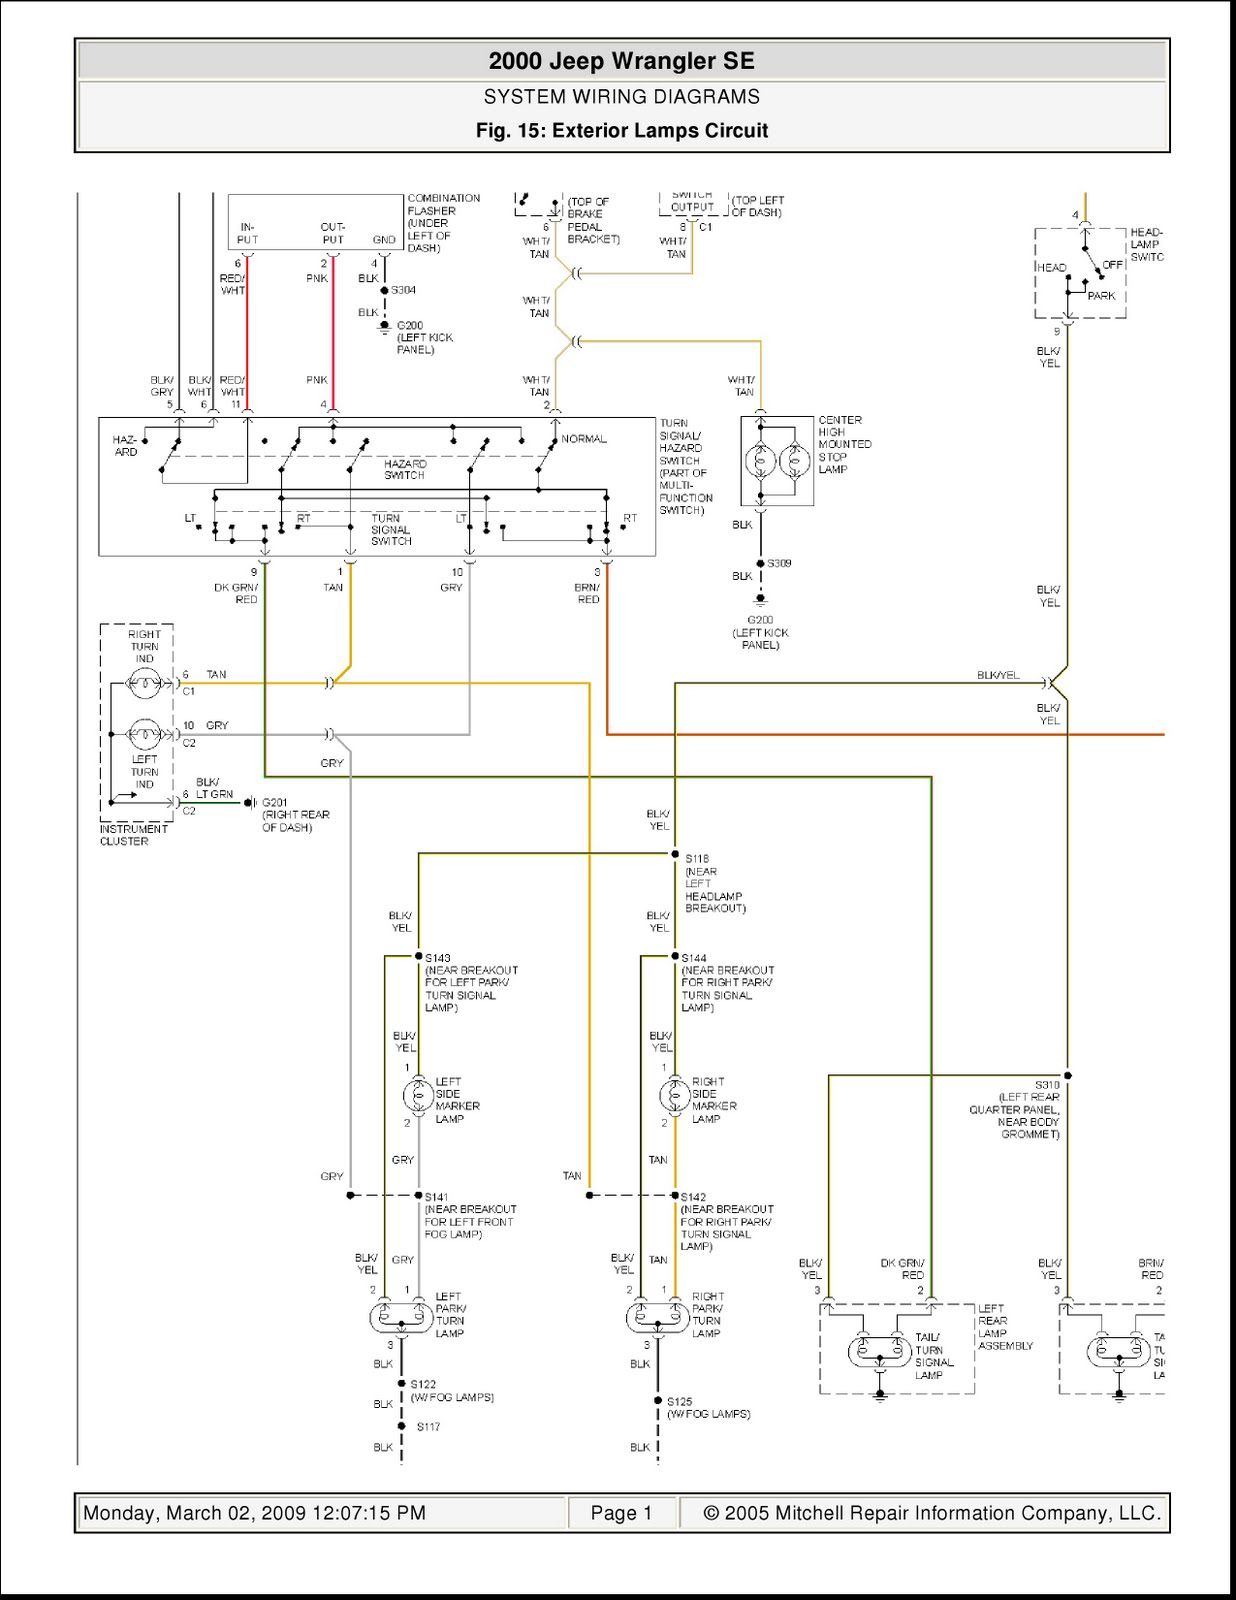 2000 Jeep Wrangler SE System Wiring Diagrams Exterior